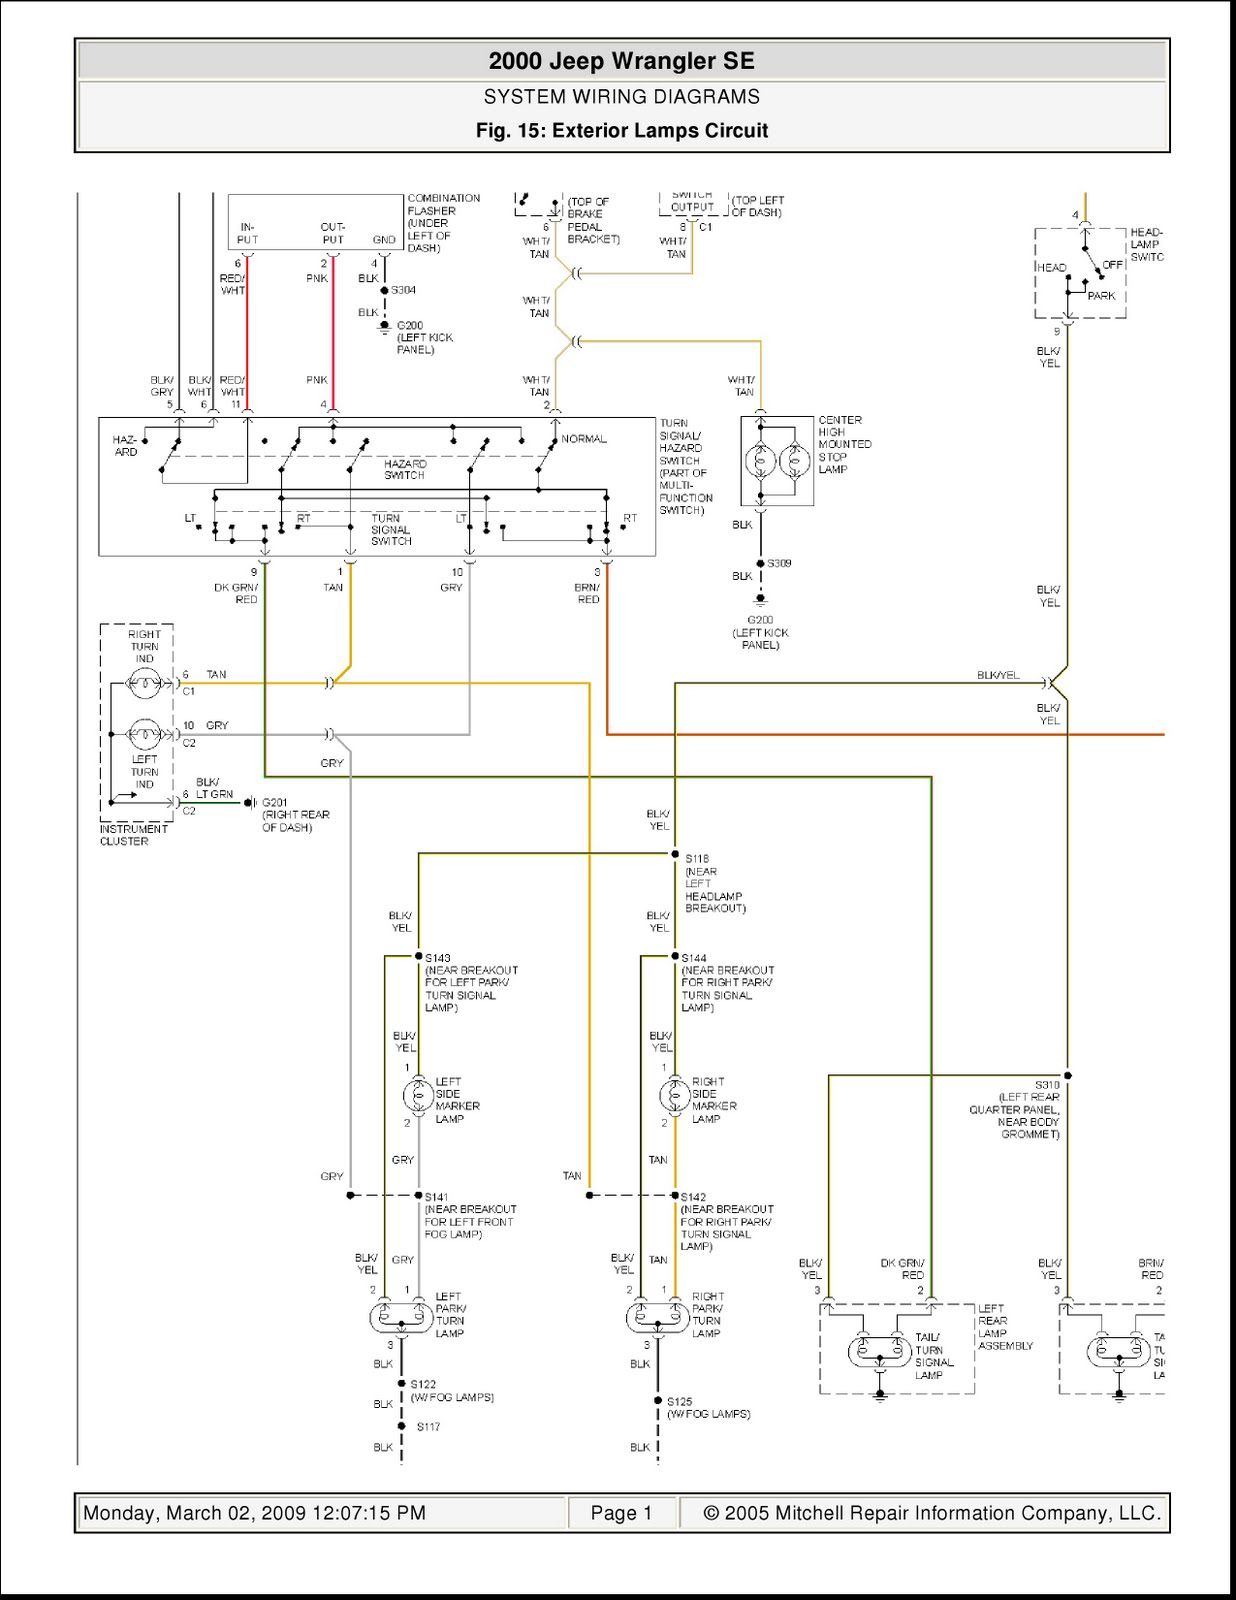 2000 Jeep Wrangler SE System Wiring Diagrams Exterior